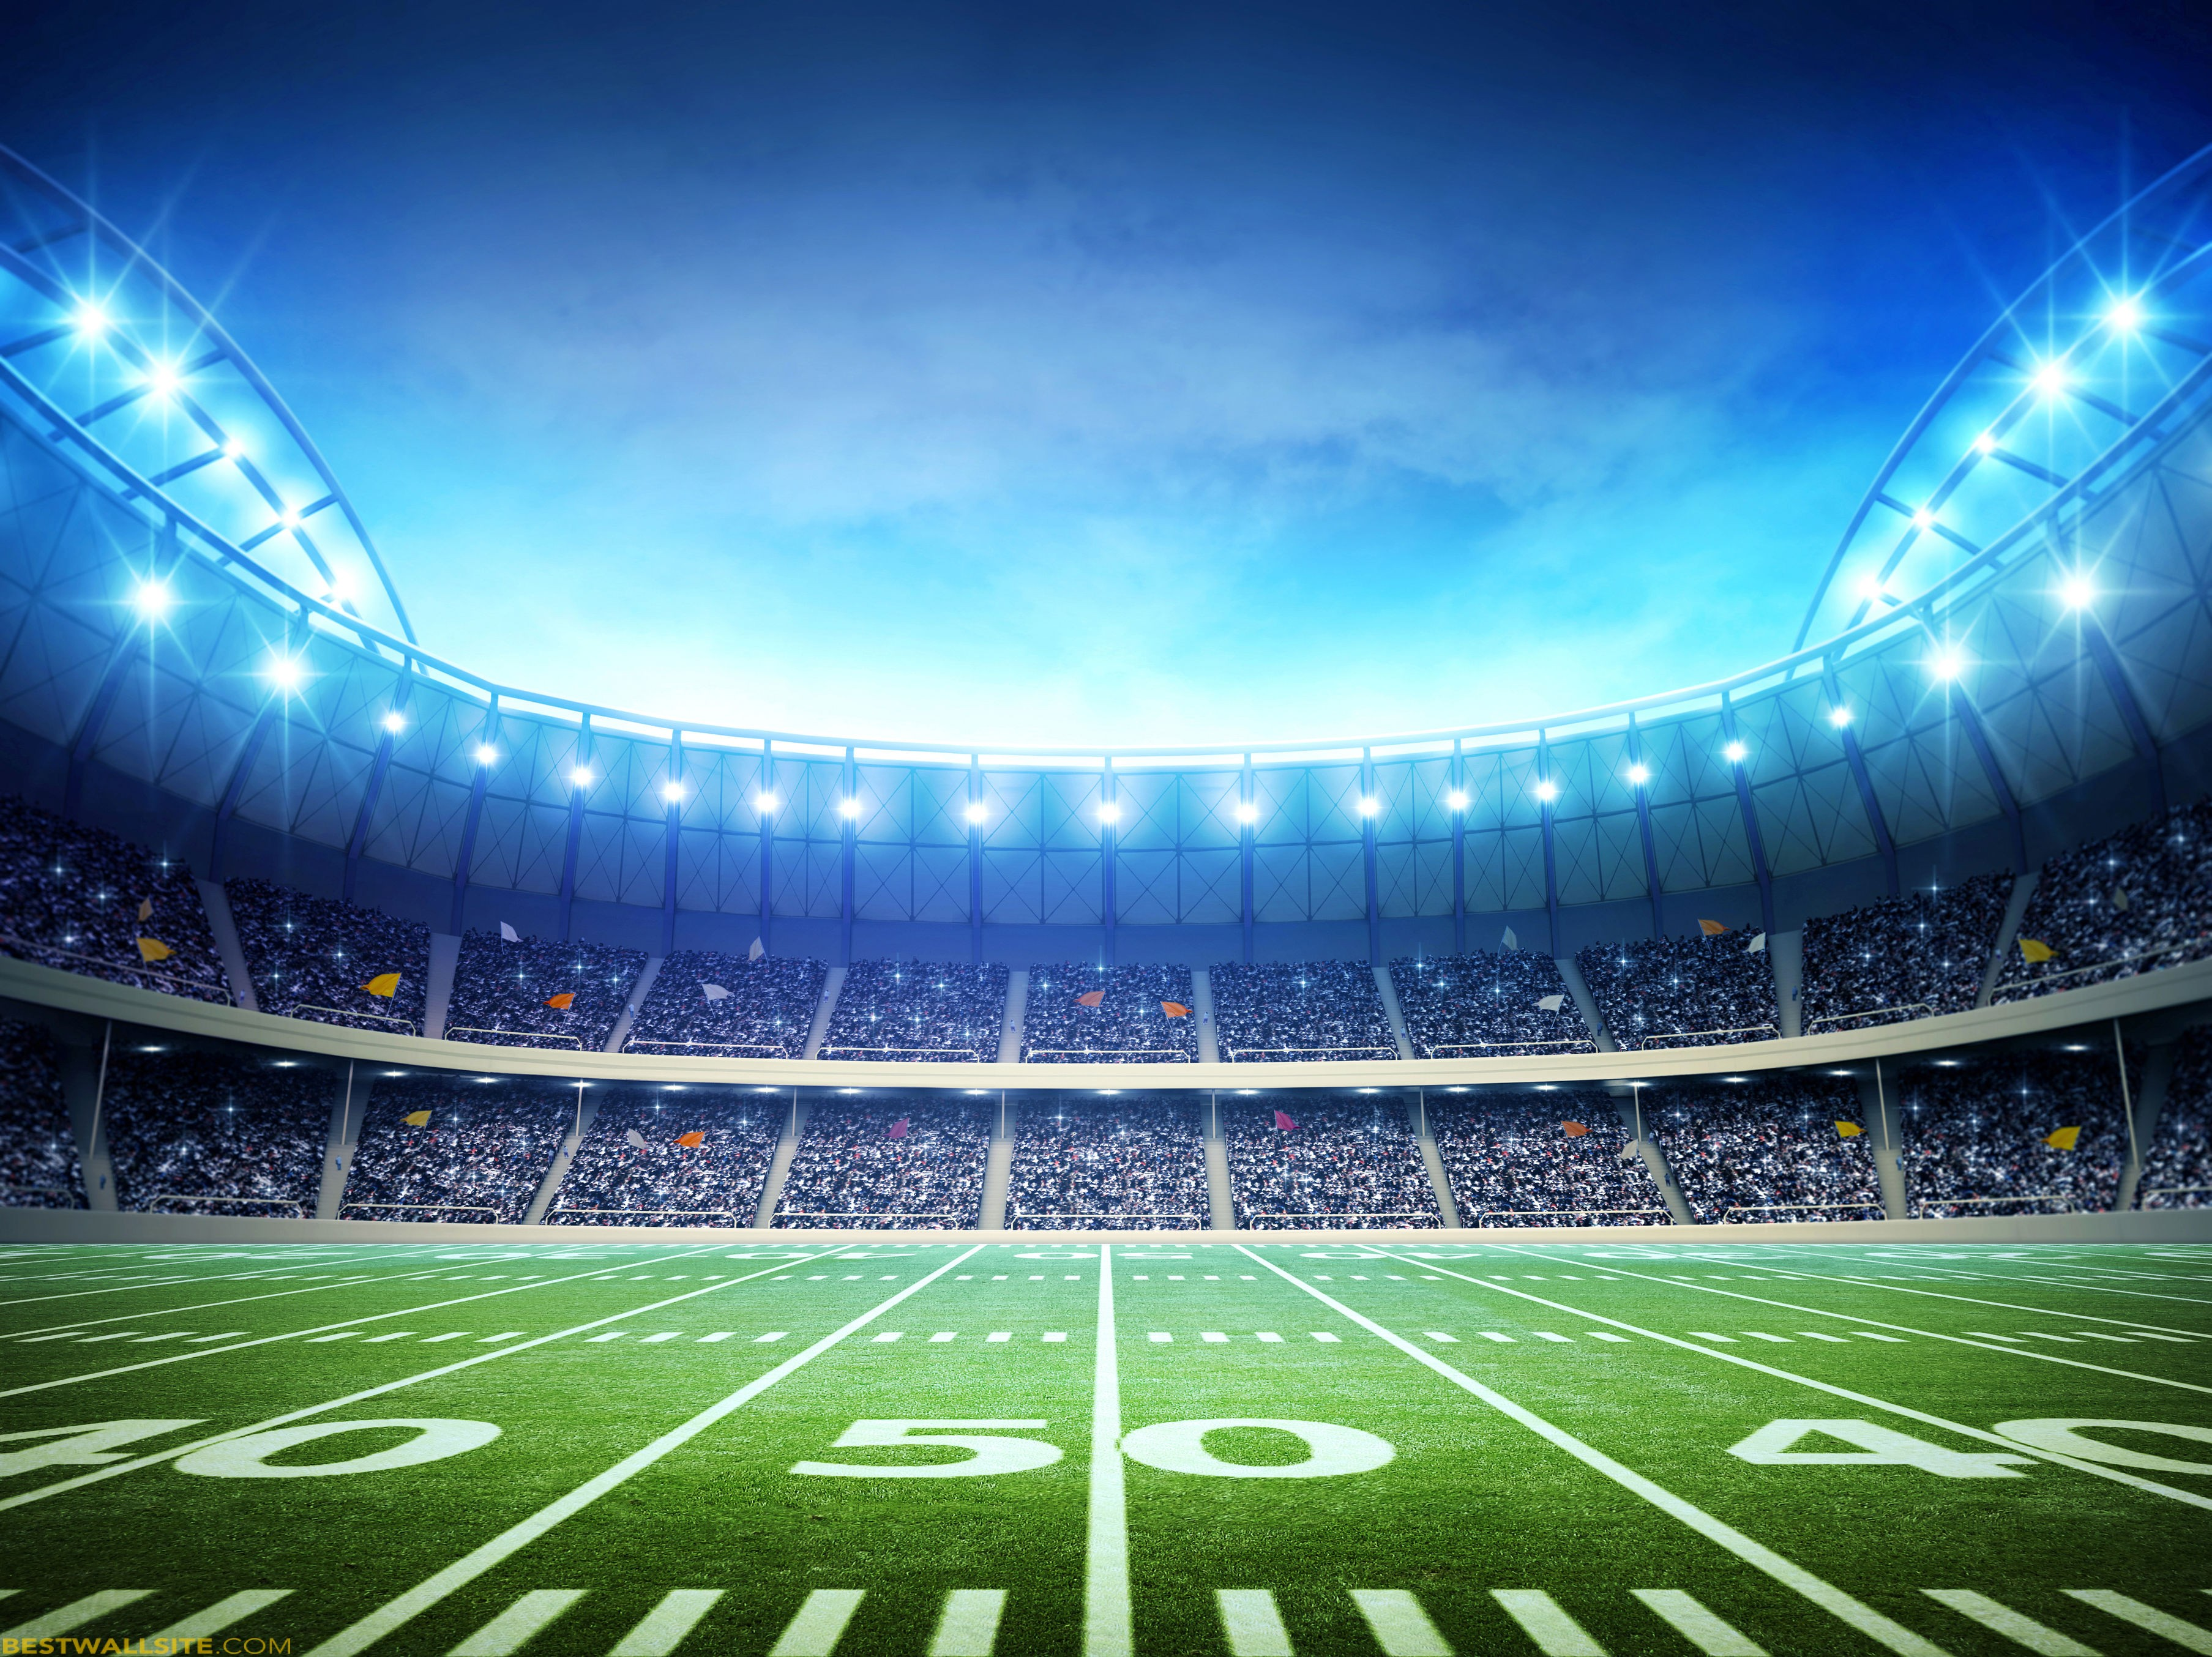 Football Field Wallpapers HD 3614x2708